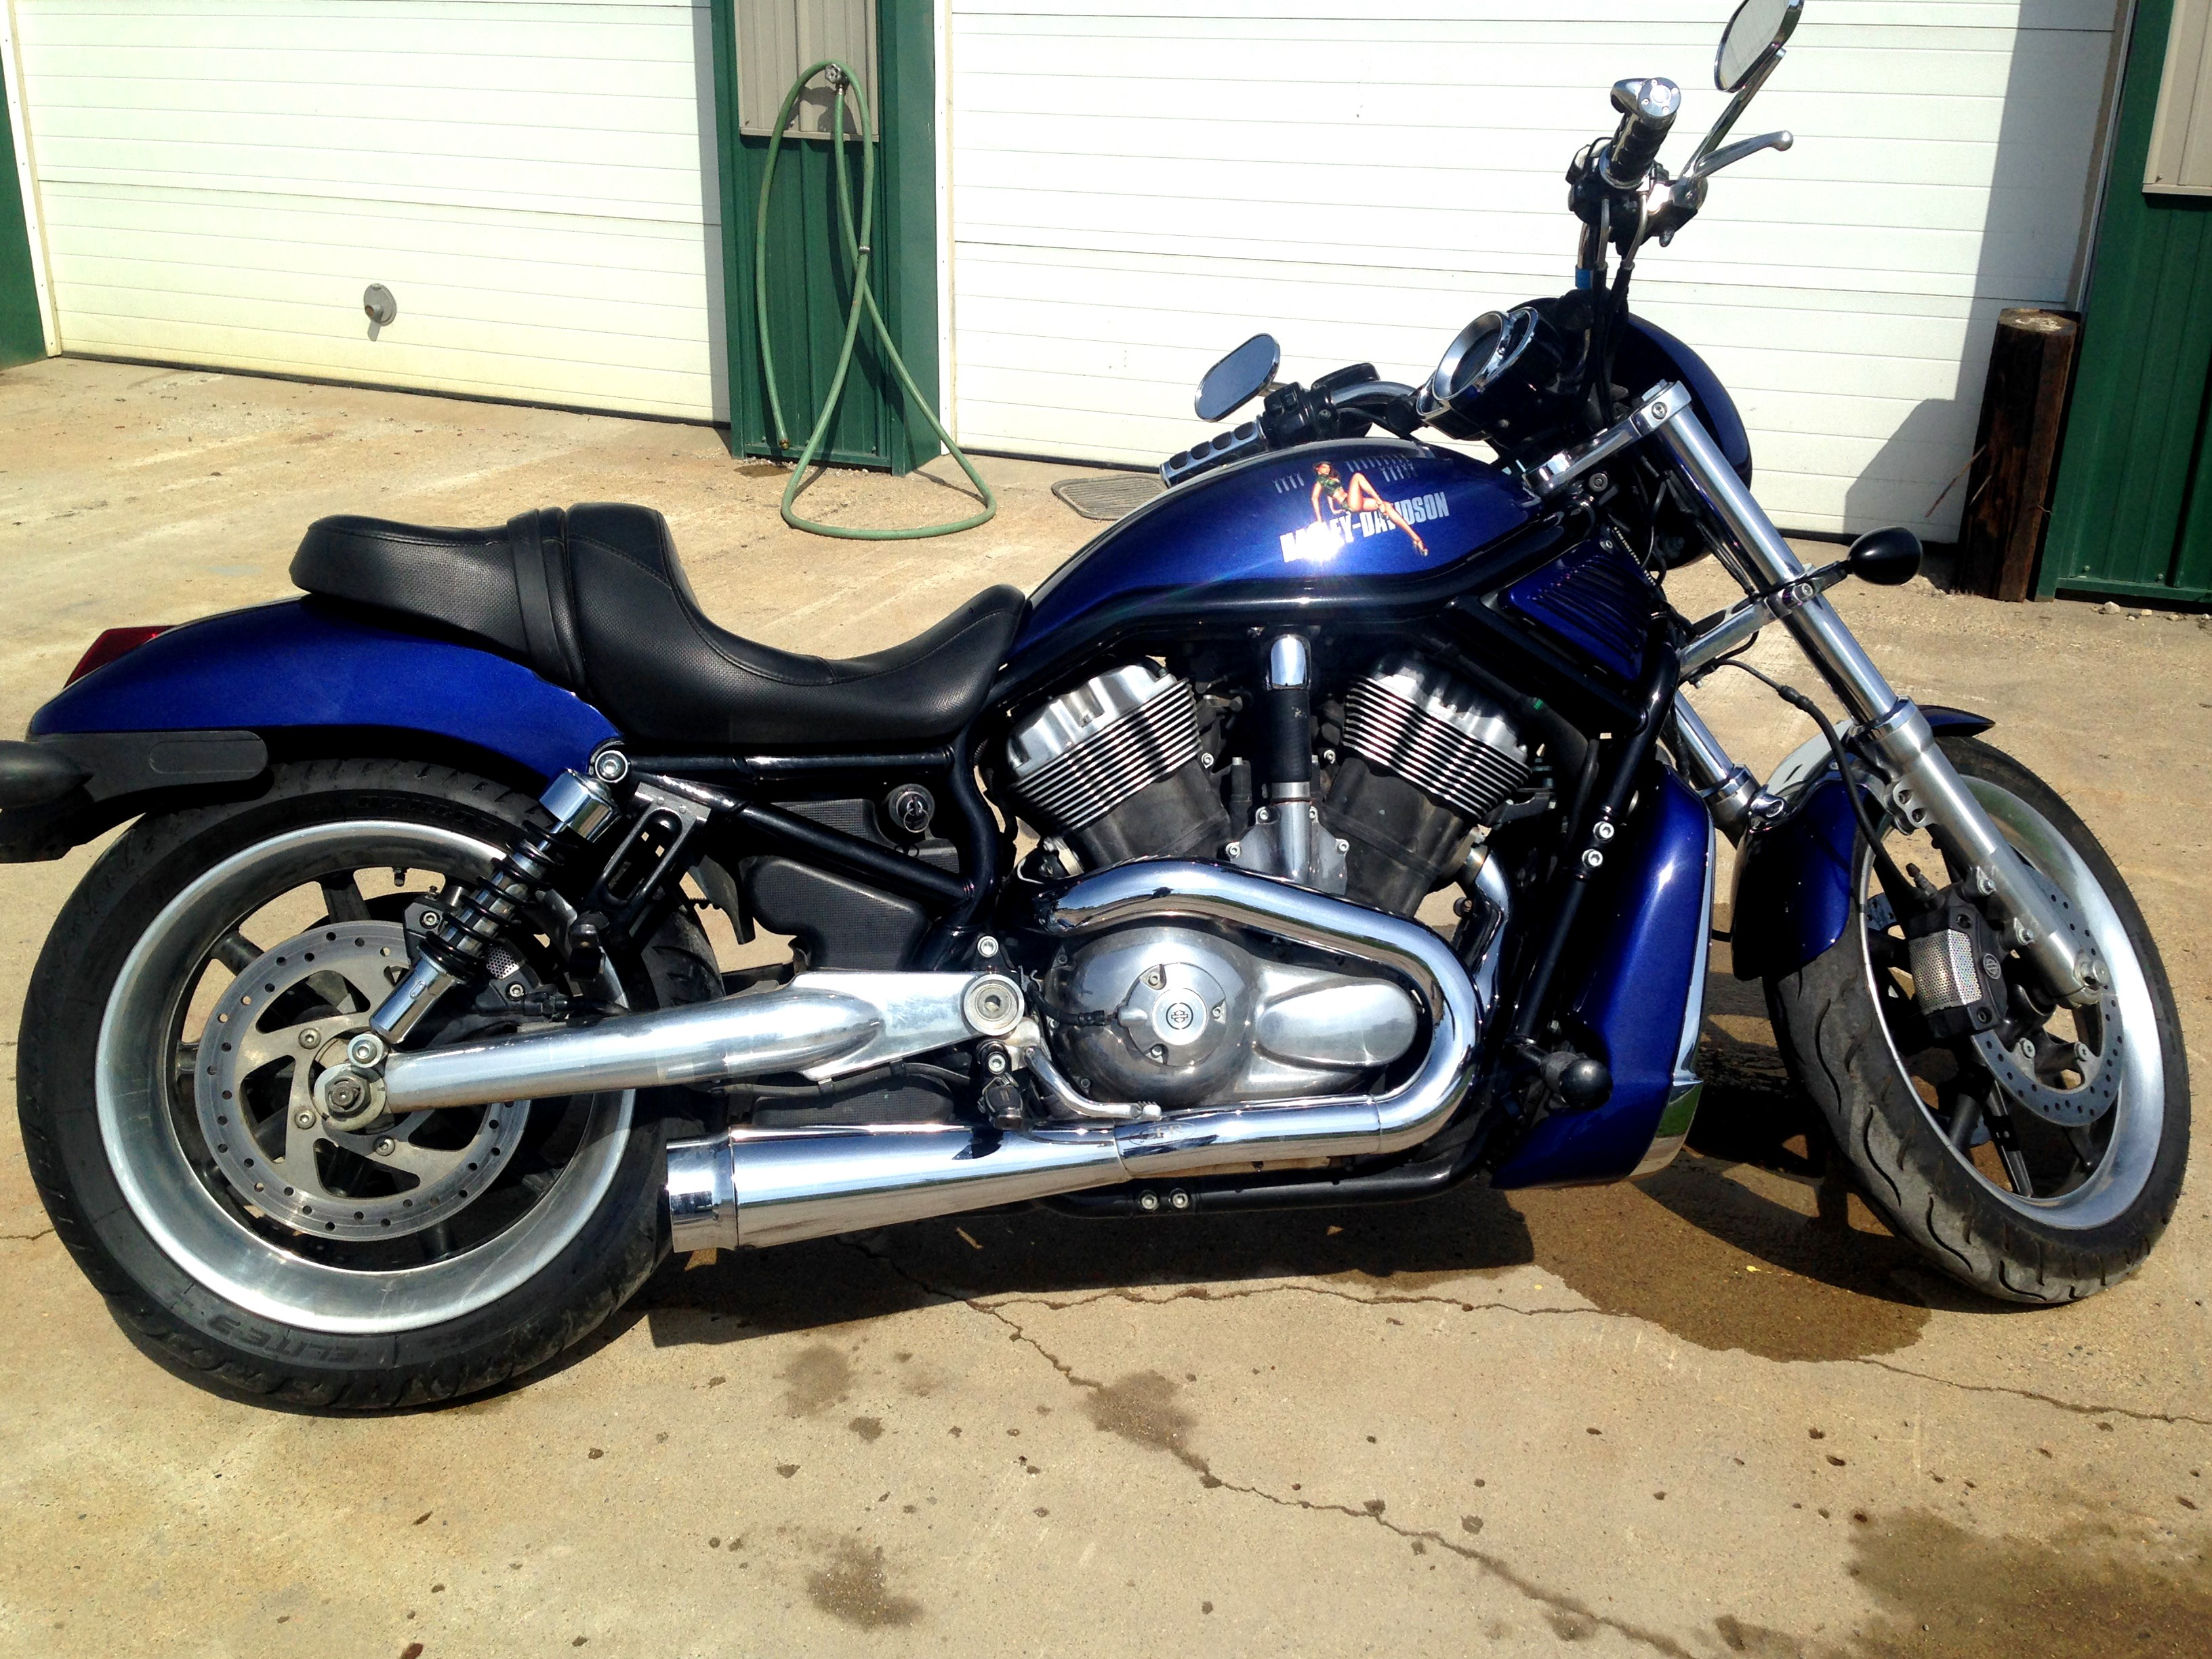 2006 harley davidson vrscd v rod night rod cobalt blue osakis minnesota 721076. Black Bedroom Furniture Sets. Home Design Ideas